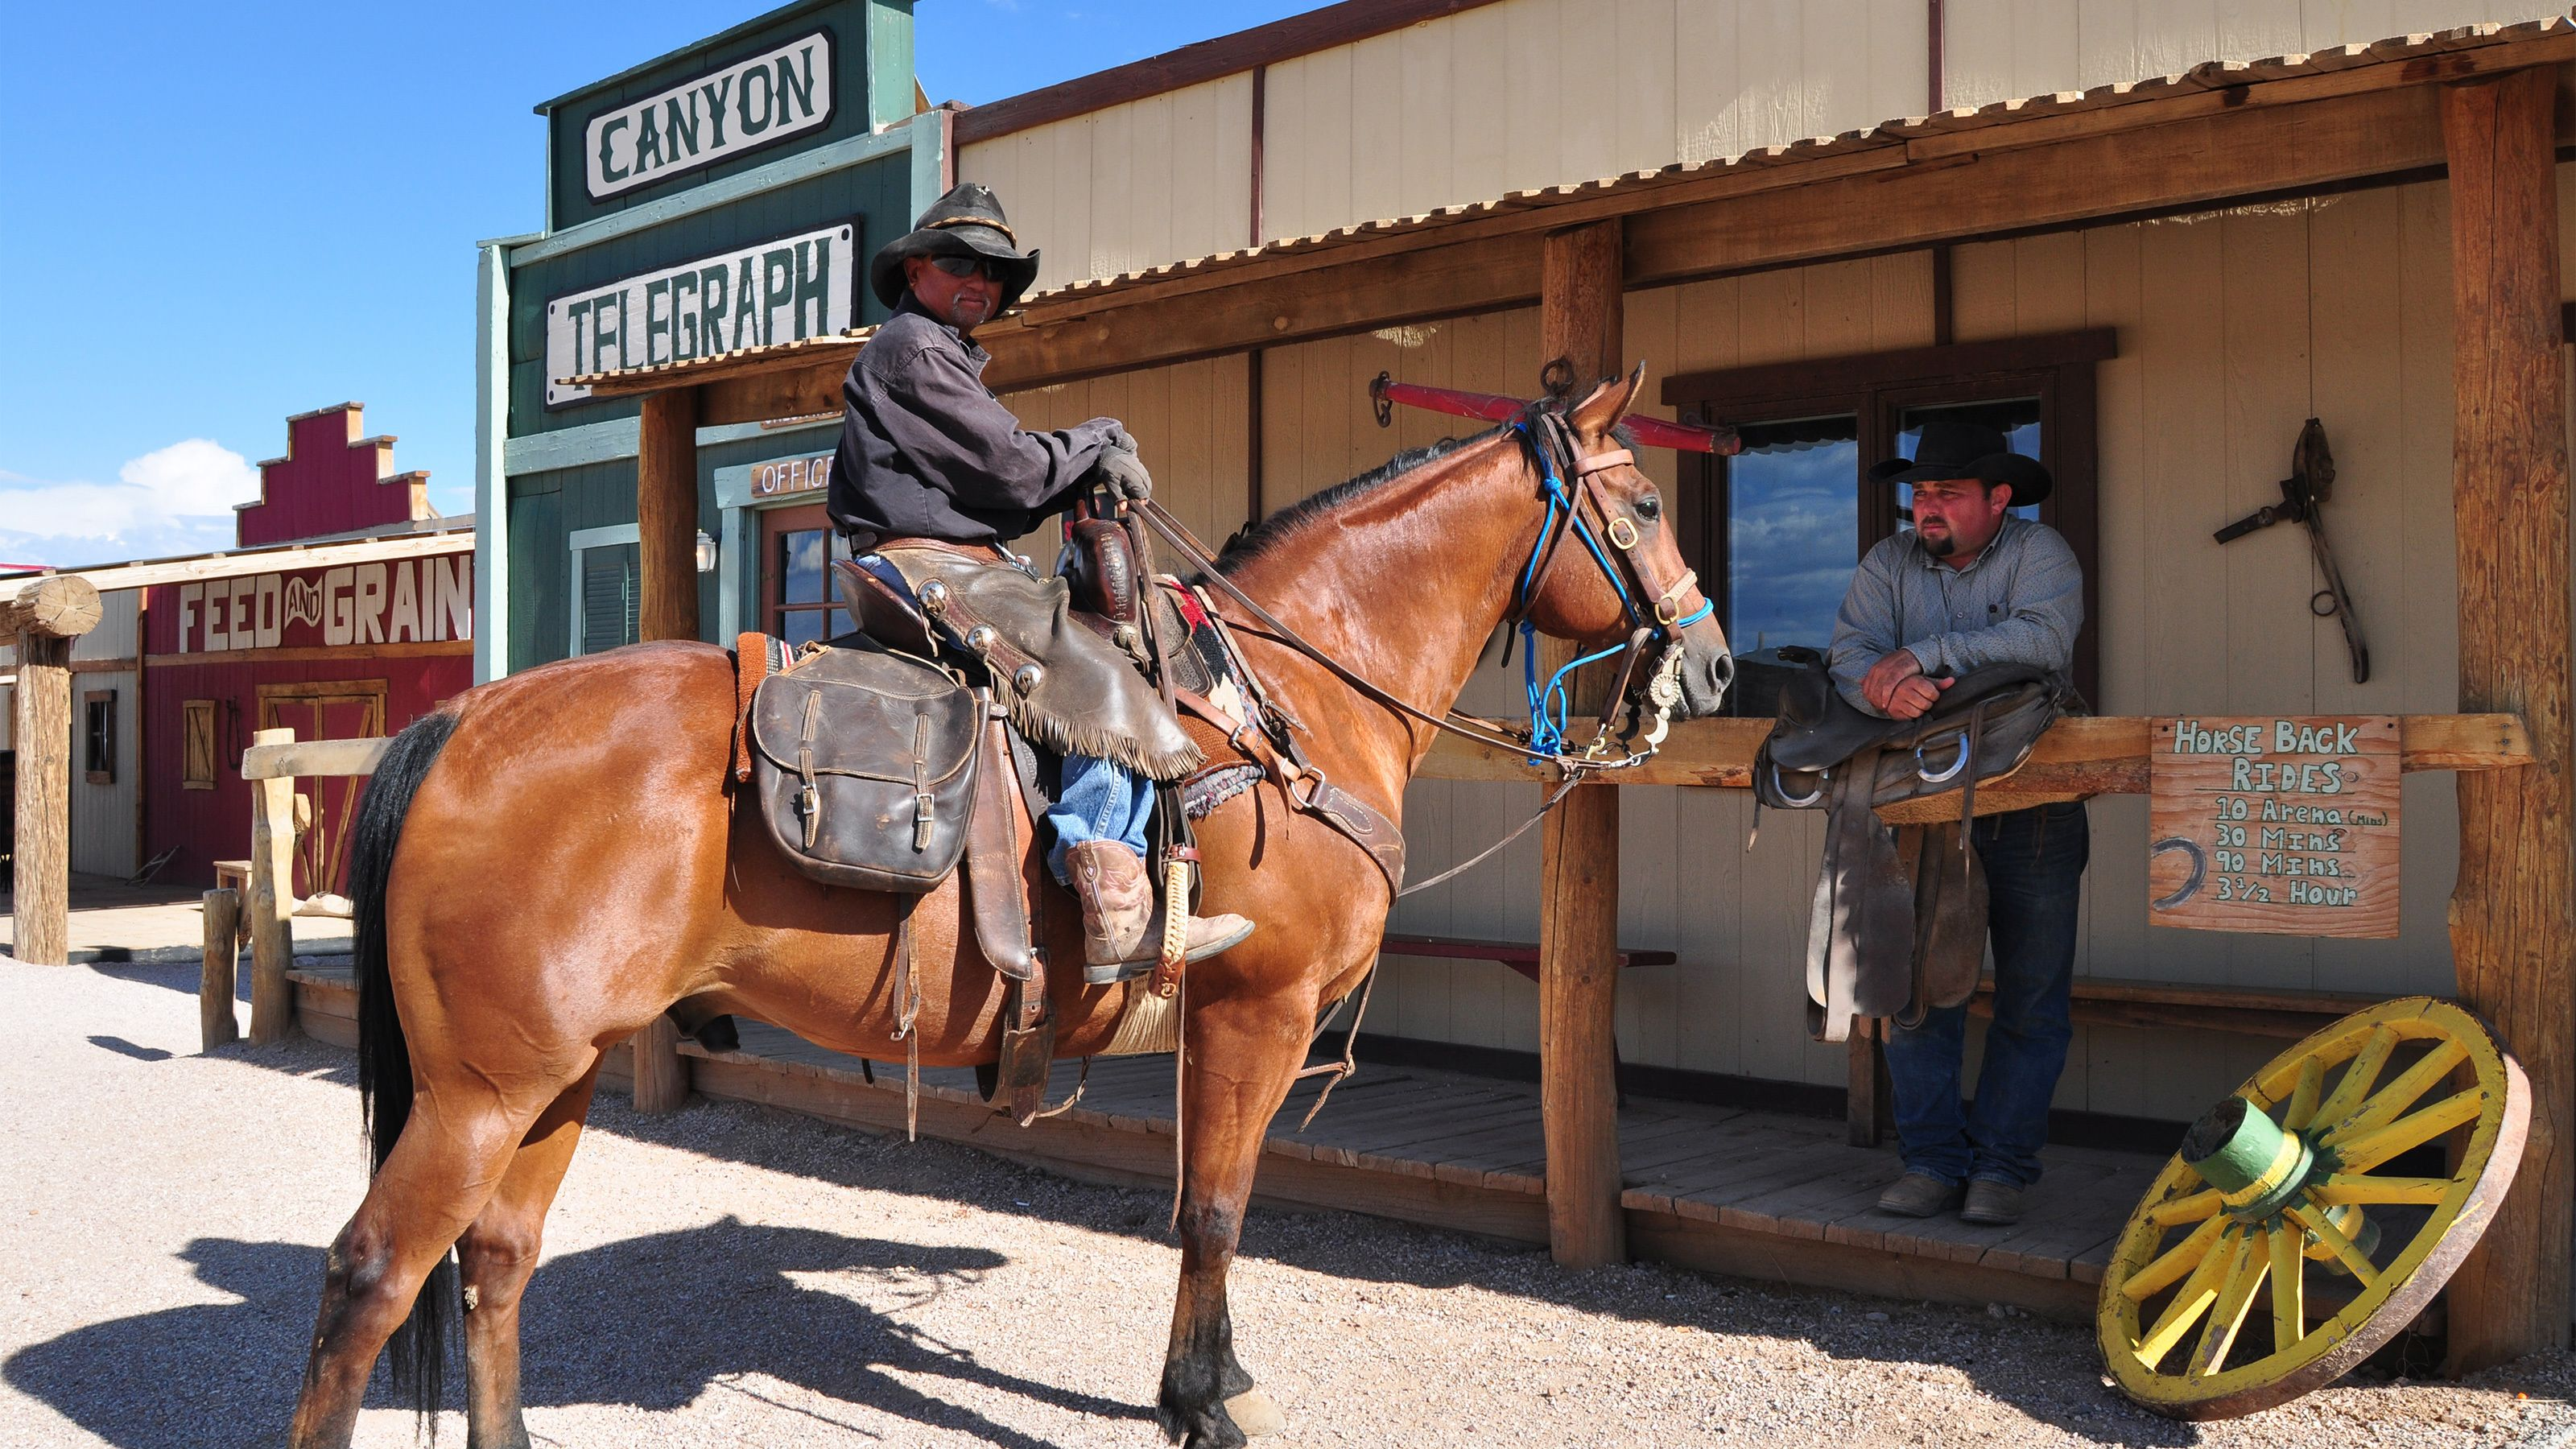 Visit Hualapai Ranch for a chance to see Native Americans and cowboys on horseback